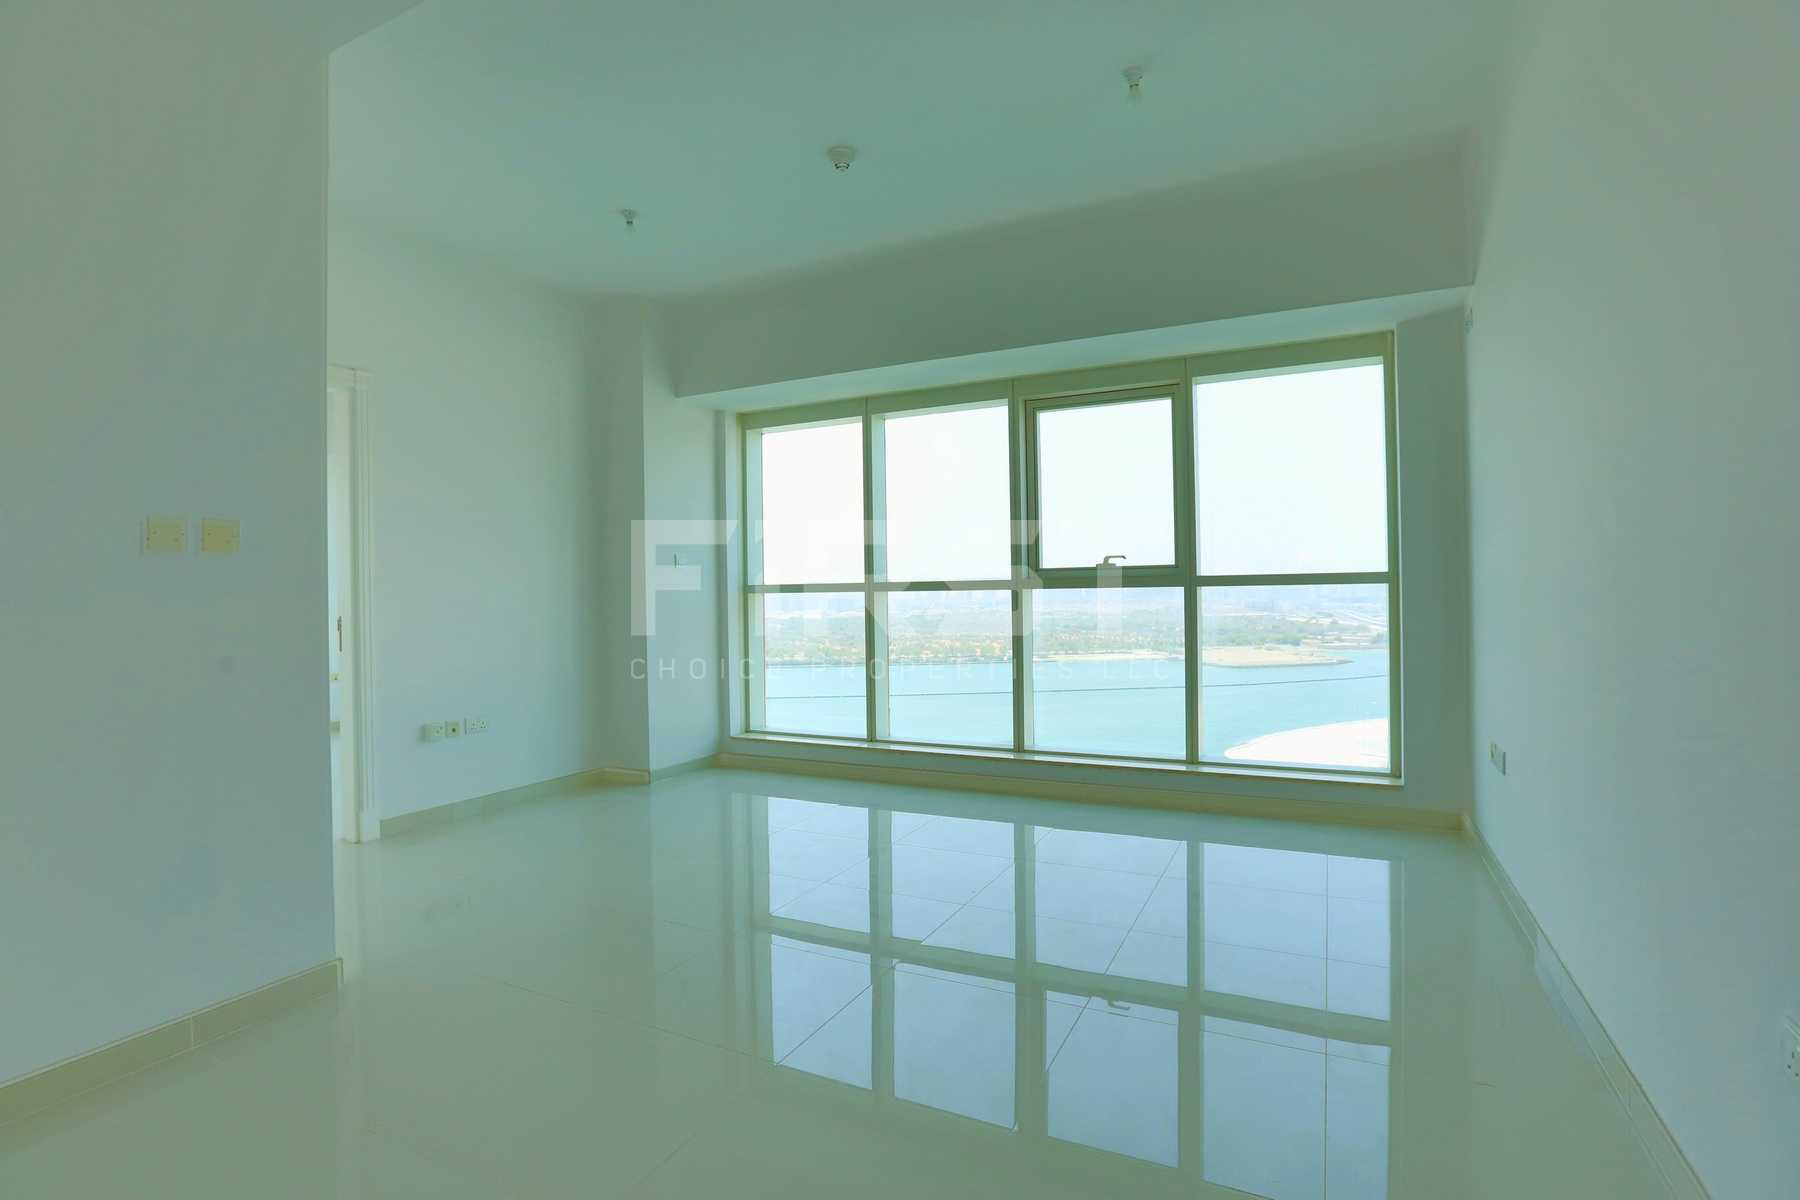 Internal Photo of 2 Bedroom Apartment in Marina bay by Damac Najmat Abu Dhabi Al Reem Island Abu Dhabi UAE (7).jpg